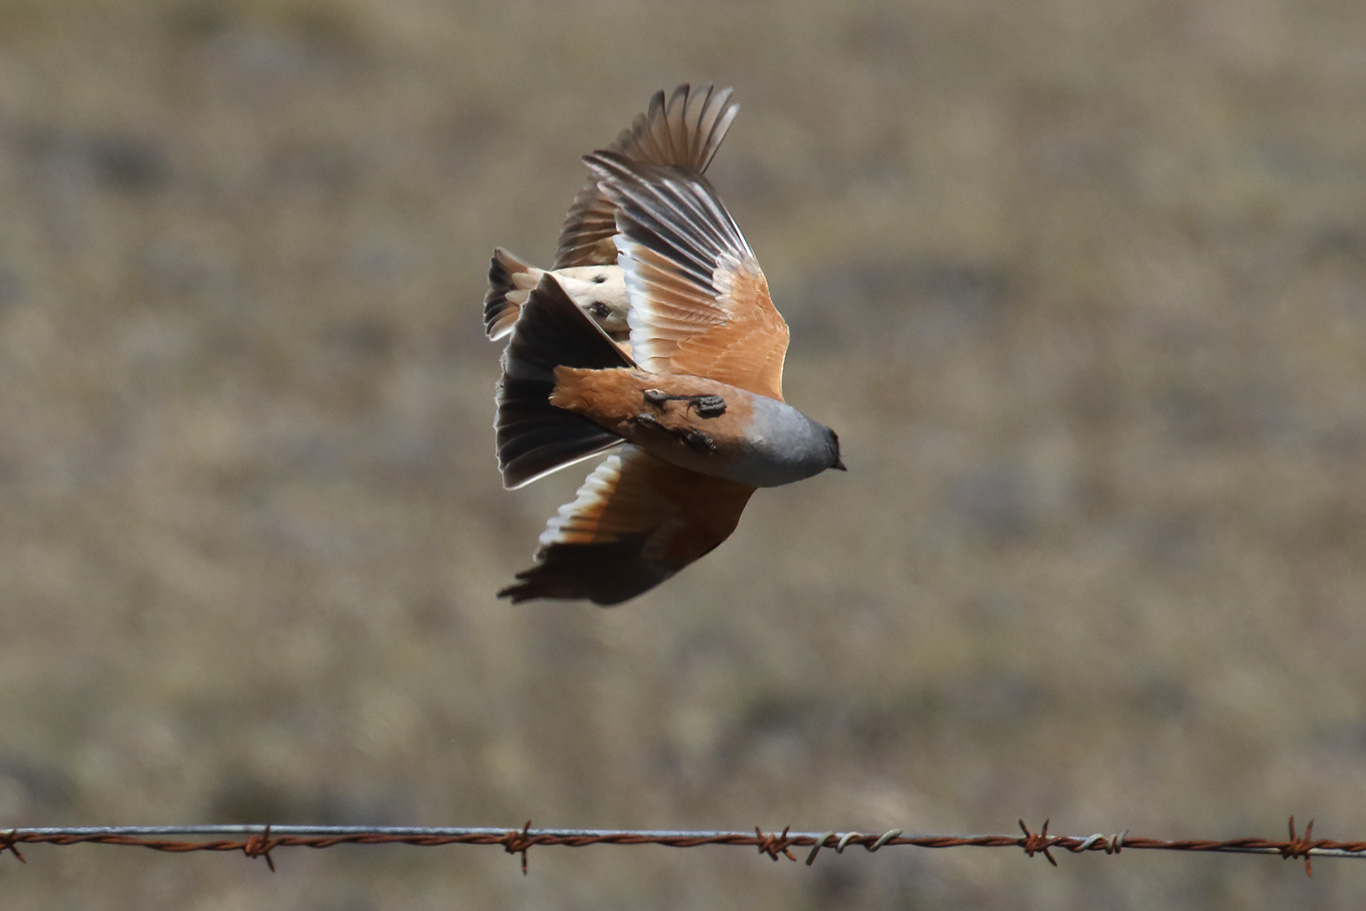 Chocolate-vented Tyrant, Y-455 track, Patagonian Steppe, Punta Arenas, Chile.